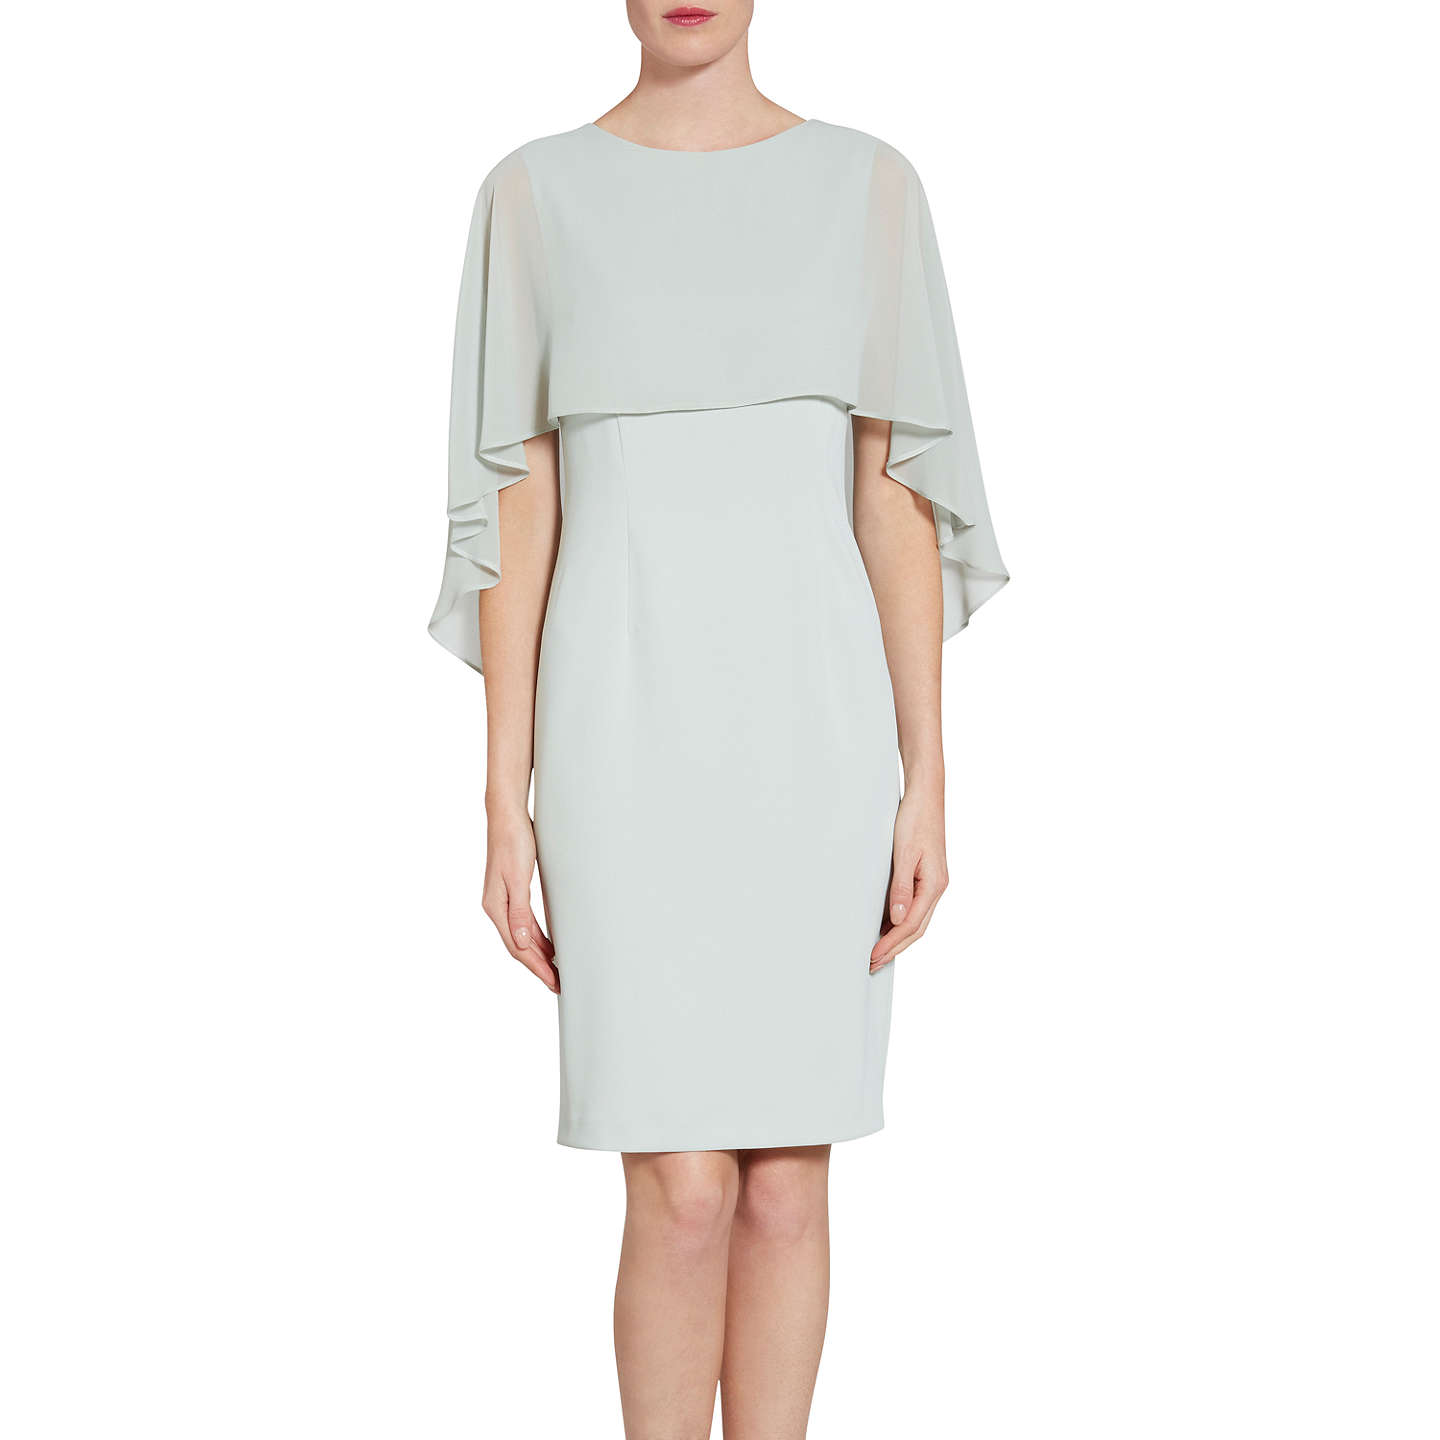 Gina Bacconi Crepe Dress And Chiffon Cape At John Lewis